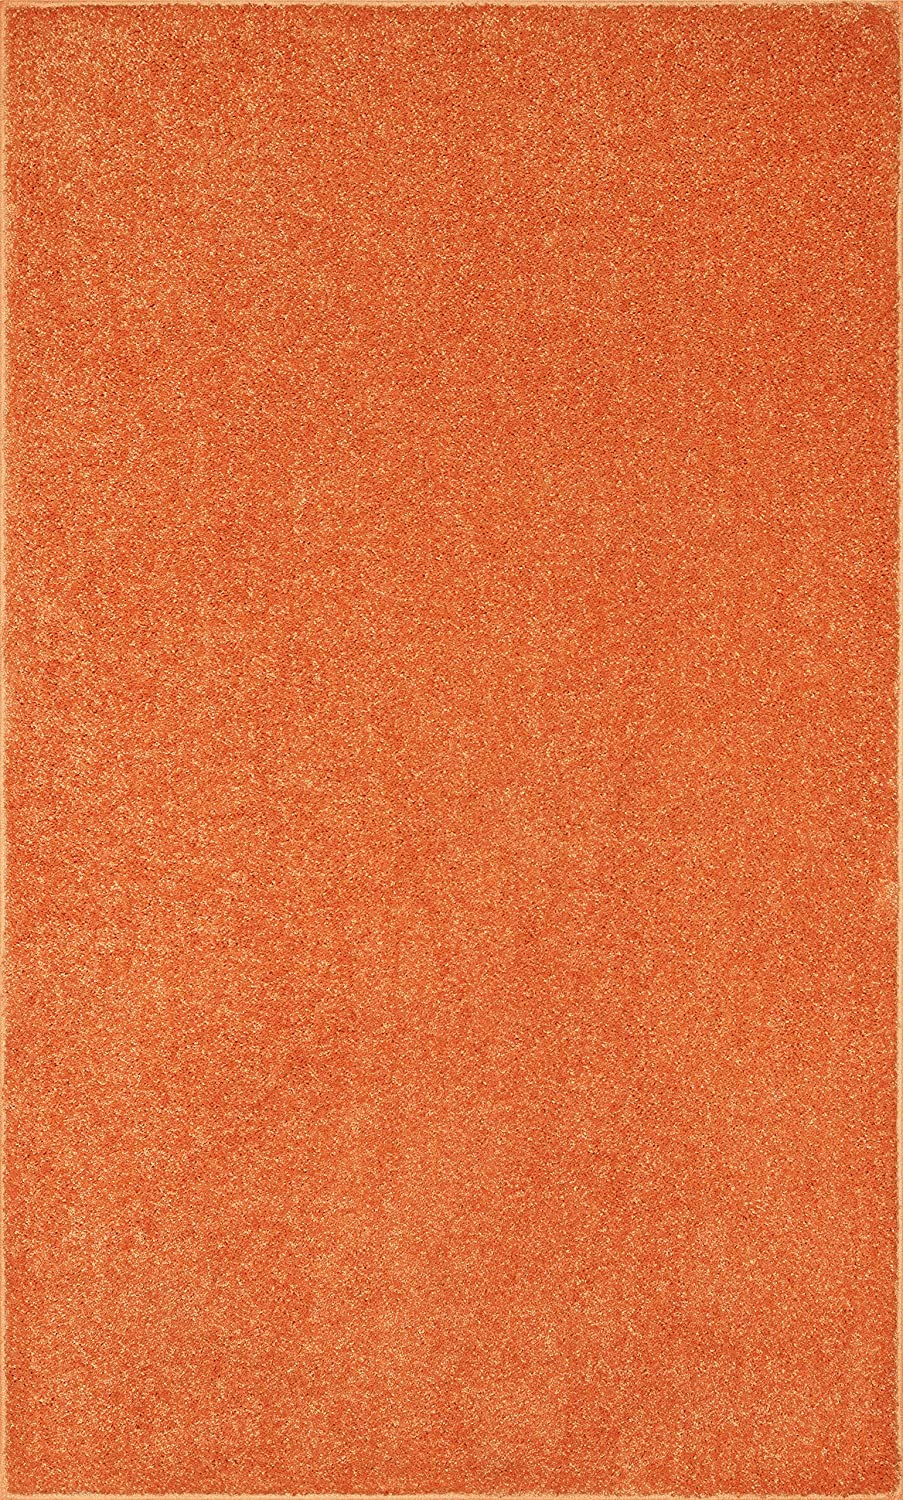 Bright House Solid Color Custom Size Area 2'6 Orange Sales Detroit Mall Runner Rug